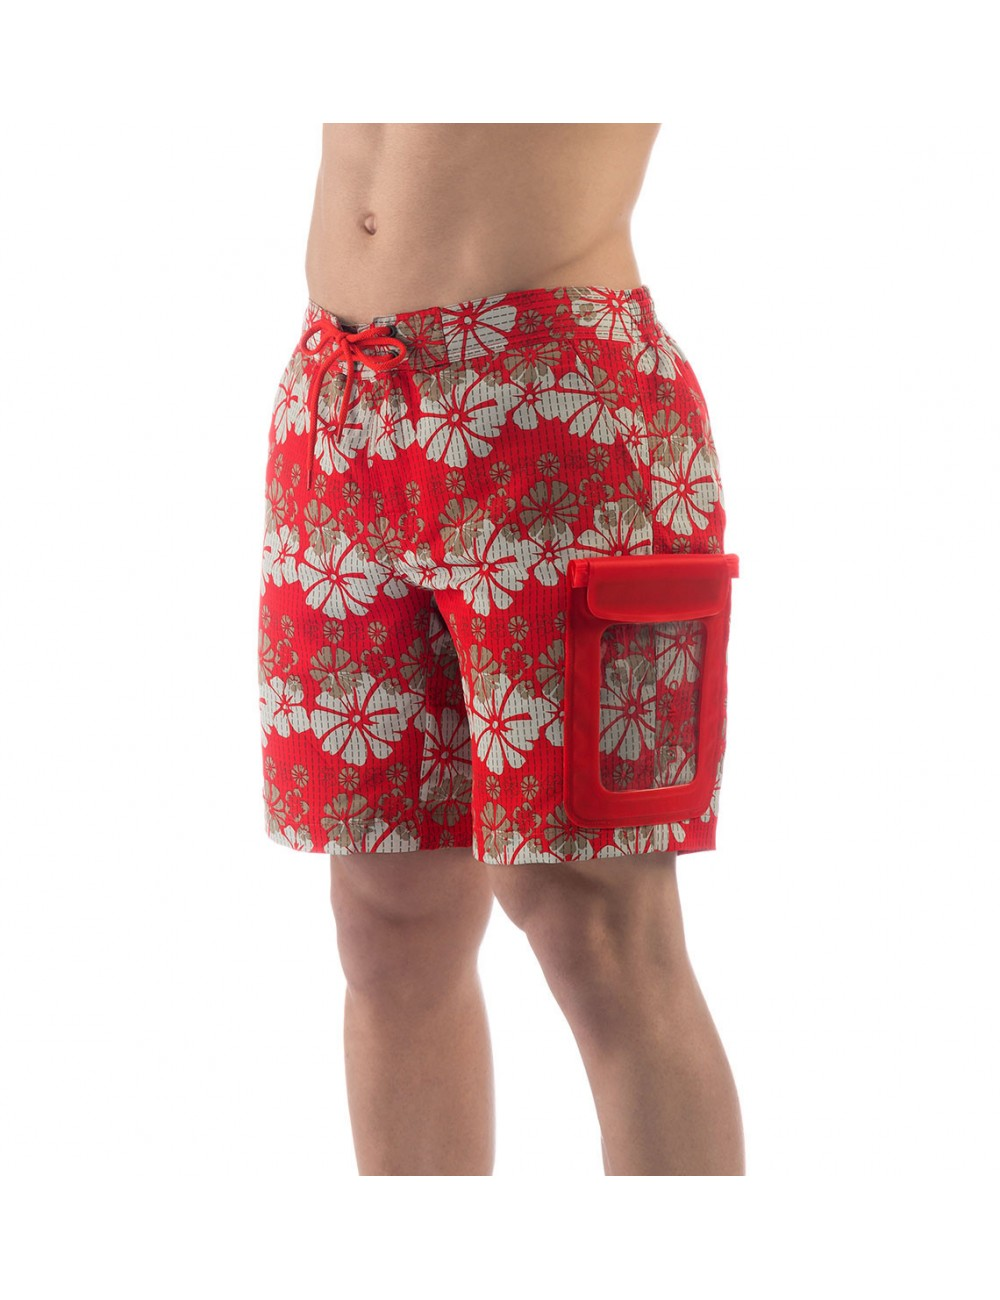 394e602dee uakko pula swim shorts flowers: uakko Swim shorts pula model with waterproof  pocket, two sewn-in pockets on both sides.Set-in rear pocket with flap and  ...